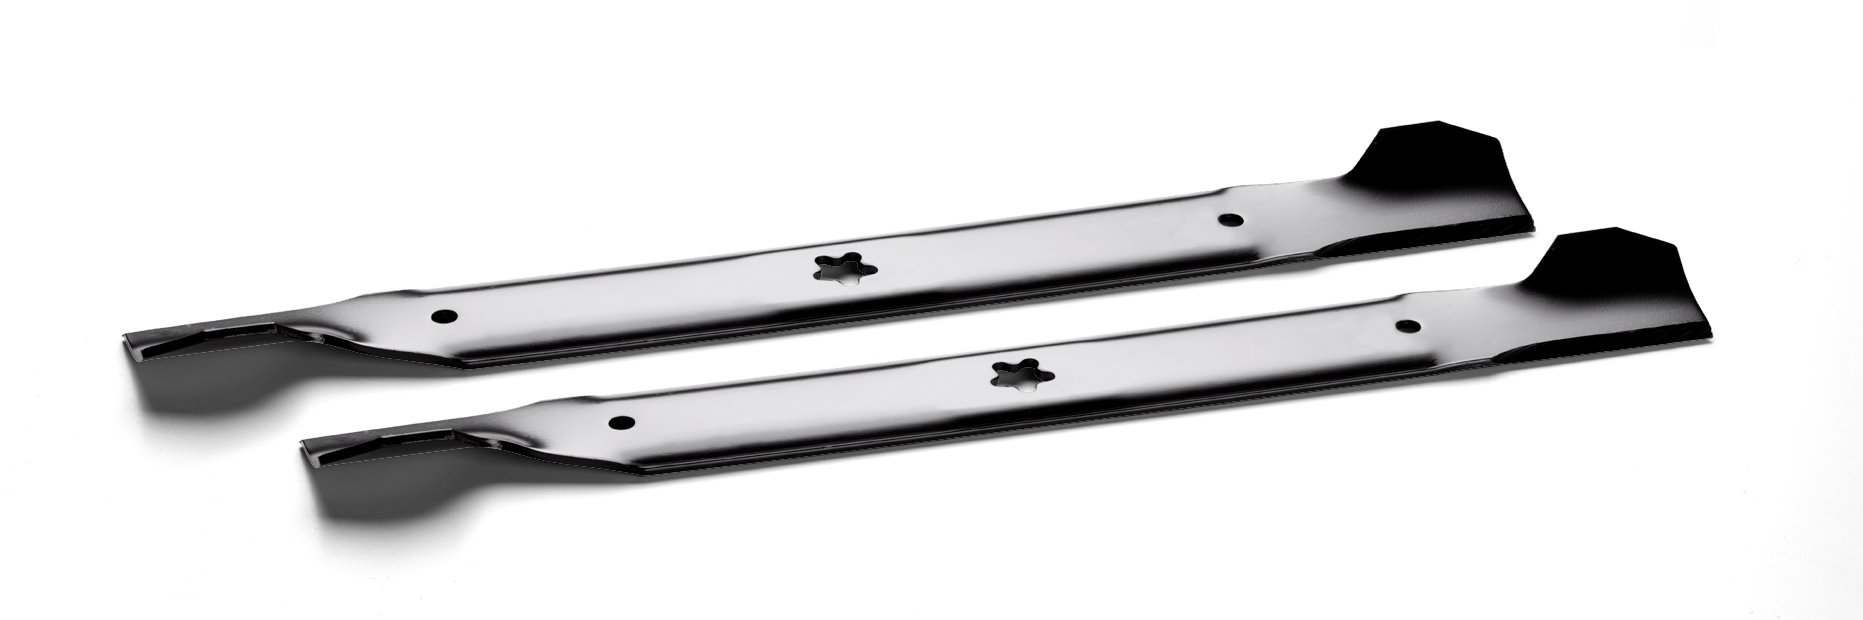 MBO043 - Tractor Blades 36 inch/92cm